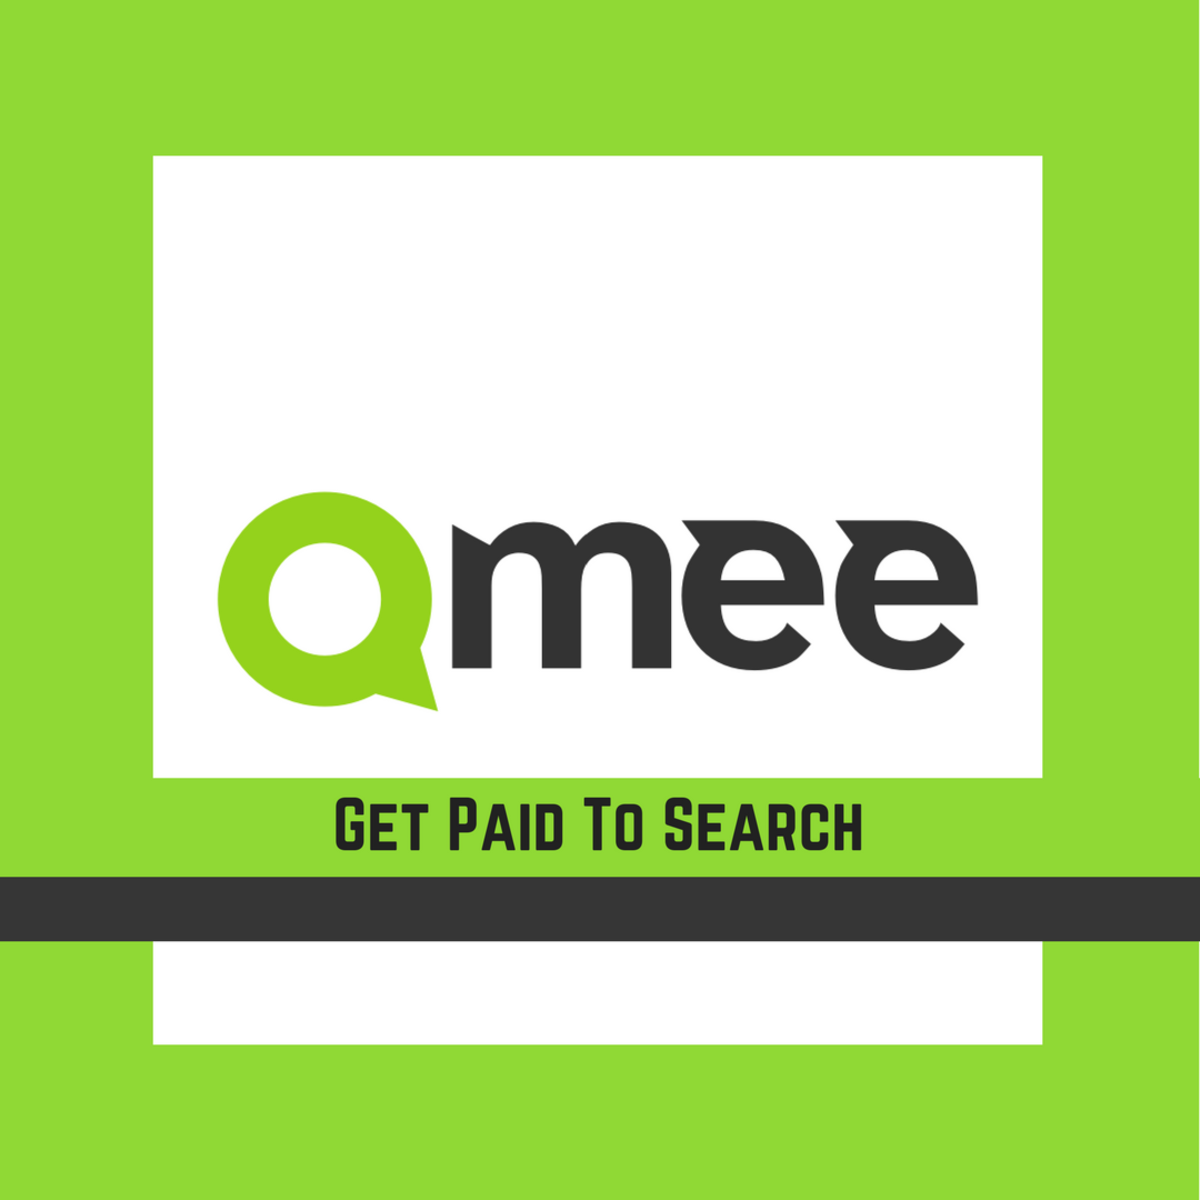 How to Earn Money Online With Qmee